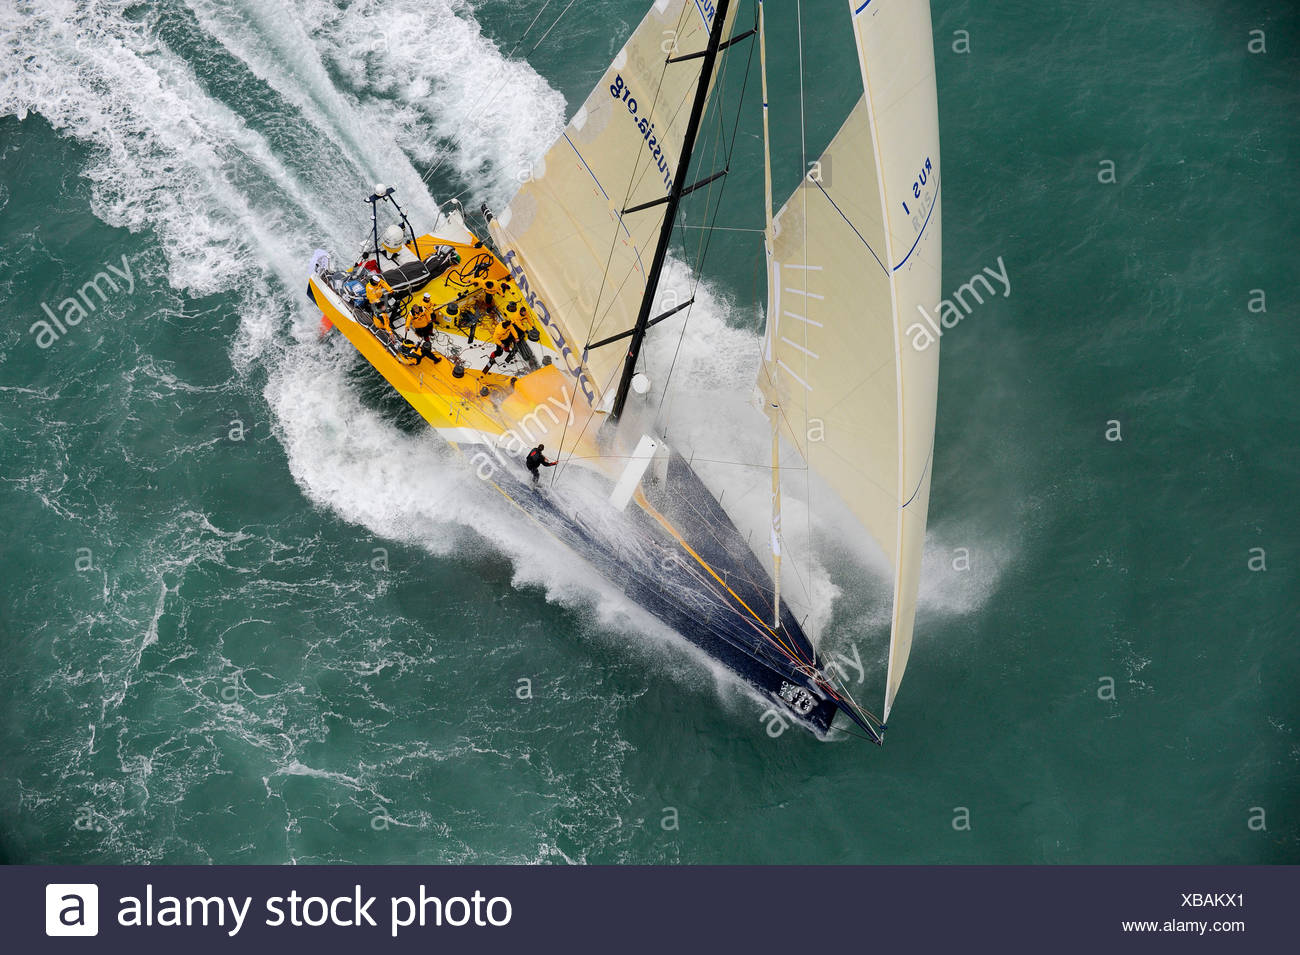 Team Russia sailing with quad headsail at the start of leg one of the 10th Volvo Ocean Race, 2008-2009, Alicante, Spain, Octob - Stock Image